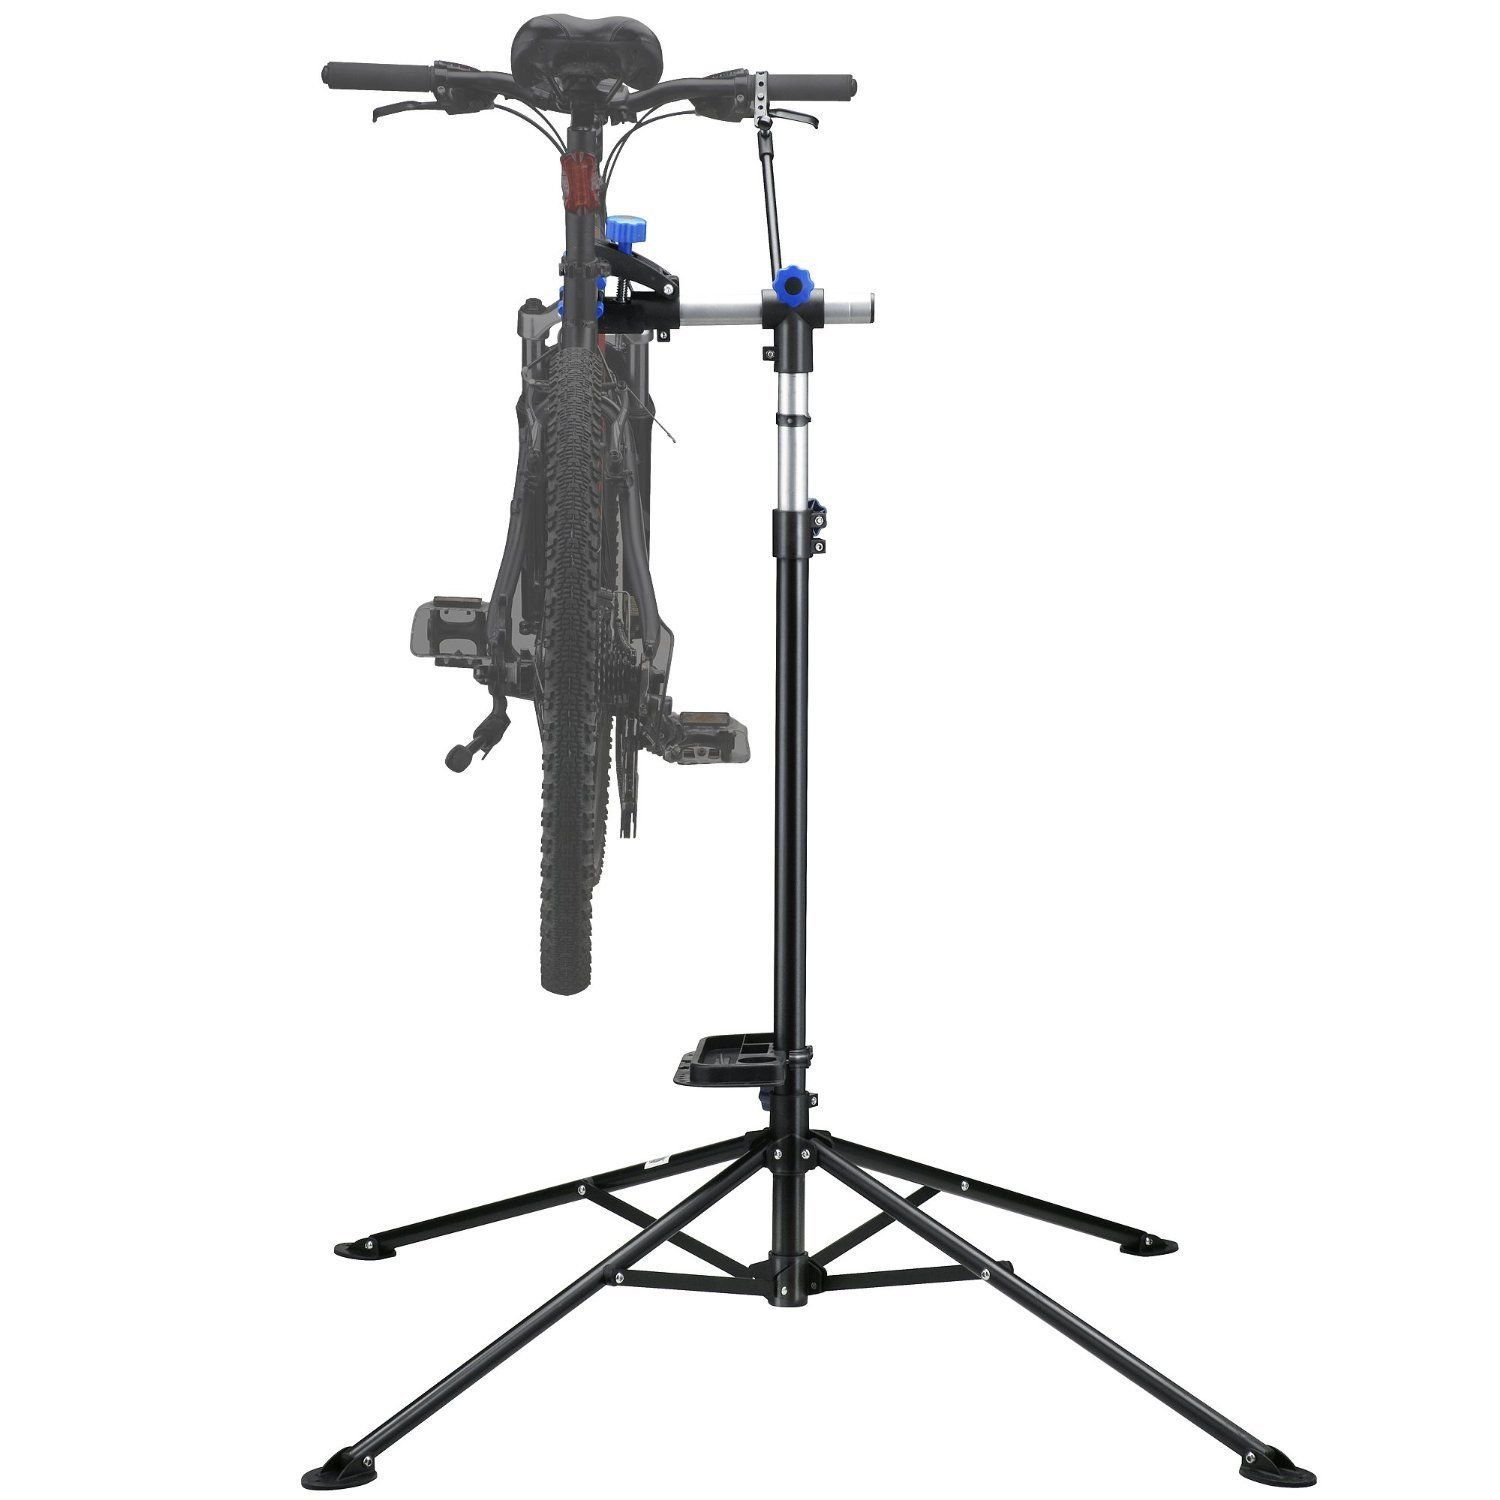 Products 2008-PRO-STAND Pro Bicycle Adjustable Repair Stand by Alitop (Image #6)